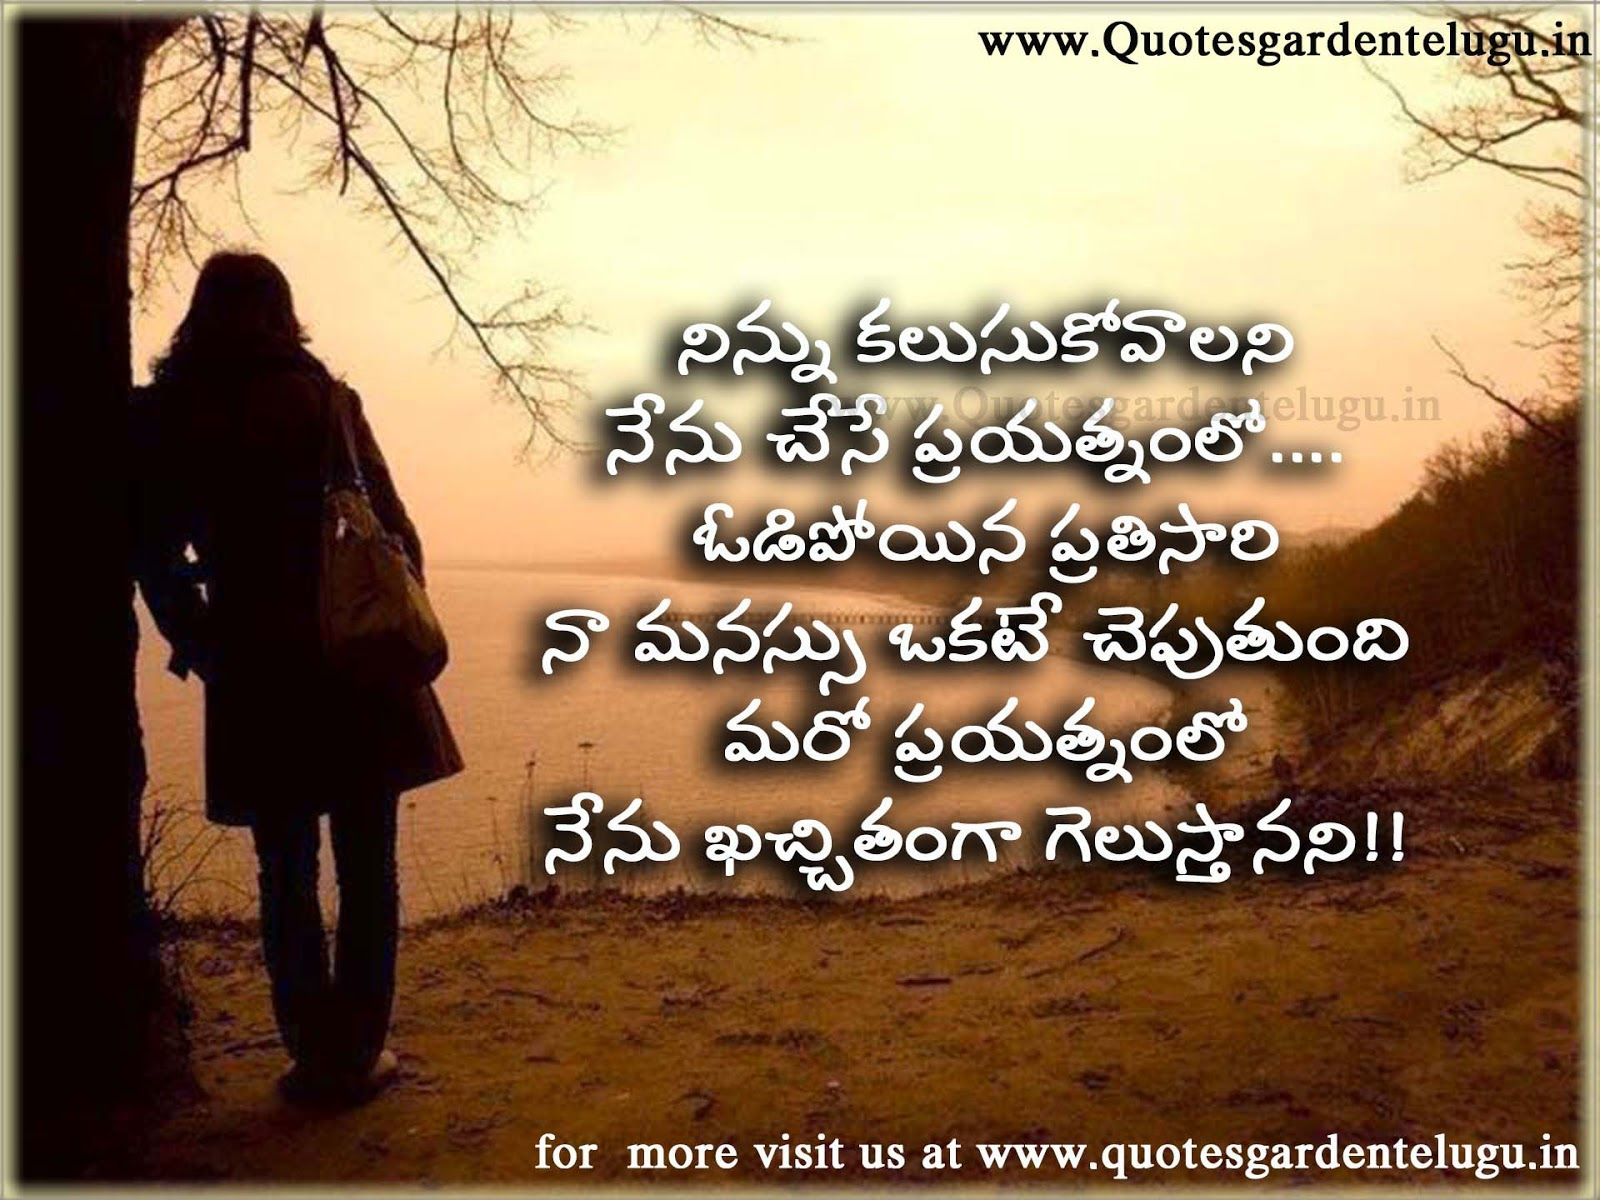 Pin By Manavula Ashok On Afgufg Love Quotes Love Failure Quotes